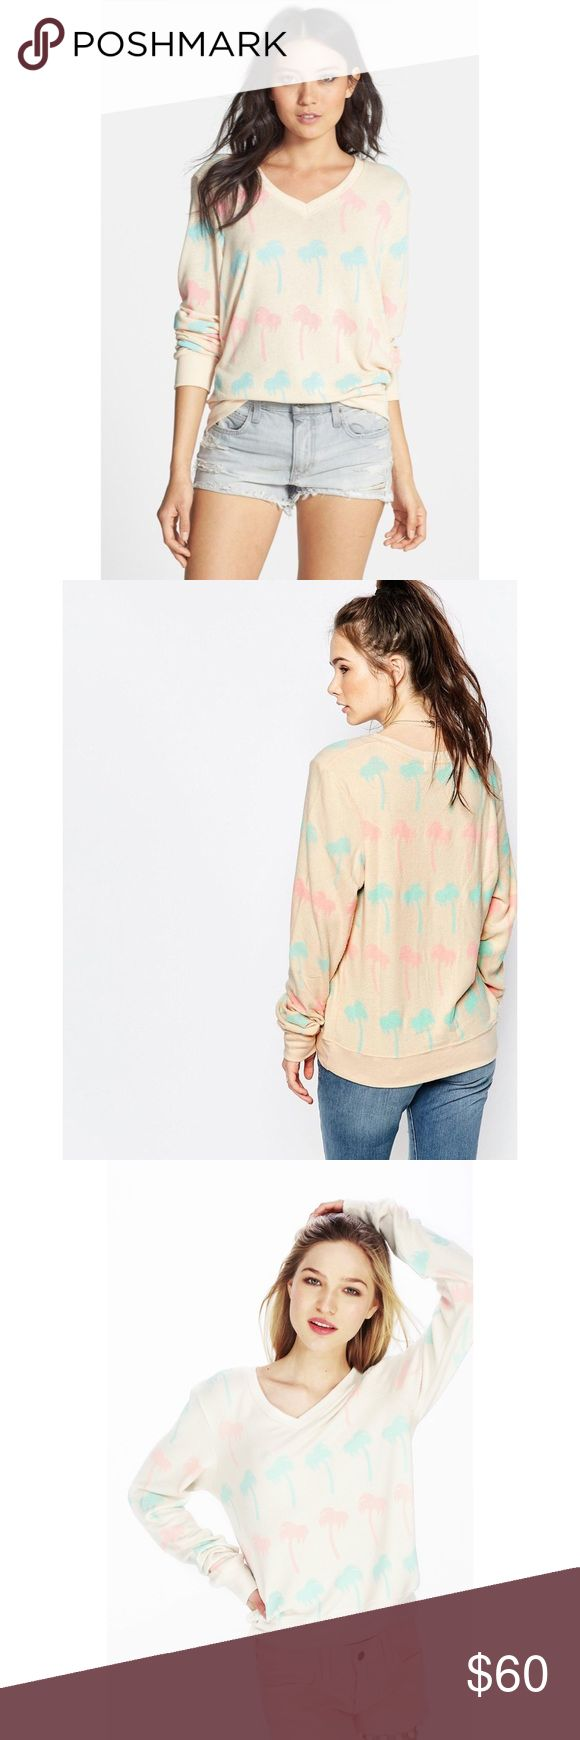 Wildfox Pastel Palms Baggy Beach Jumper 🍧🍡 Wildfox Cream colored BBJ now for sale!  I no longer wear this but I would love to resell it.  I had the sleeves professionally tailored in San Francisco and the measurements are in the photos (22 inches).  Has a very oversized/relaxed fit and v neckline.  Has no flaws other than pilling.  Feel free to ask questions, this sweater was very pricy and I spent an extra $15 tailoring the sleeves.  Tags:  tropical palm trees Los Angeles white cream…